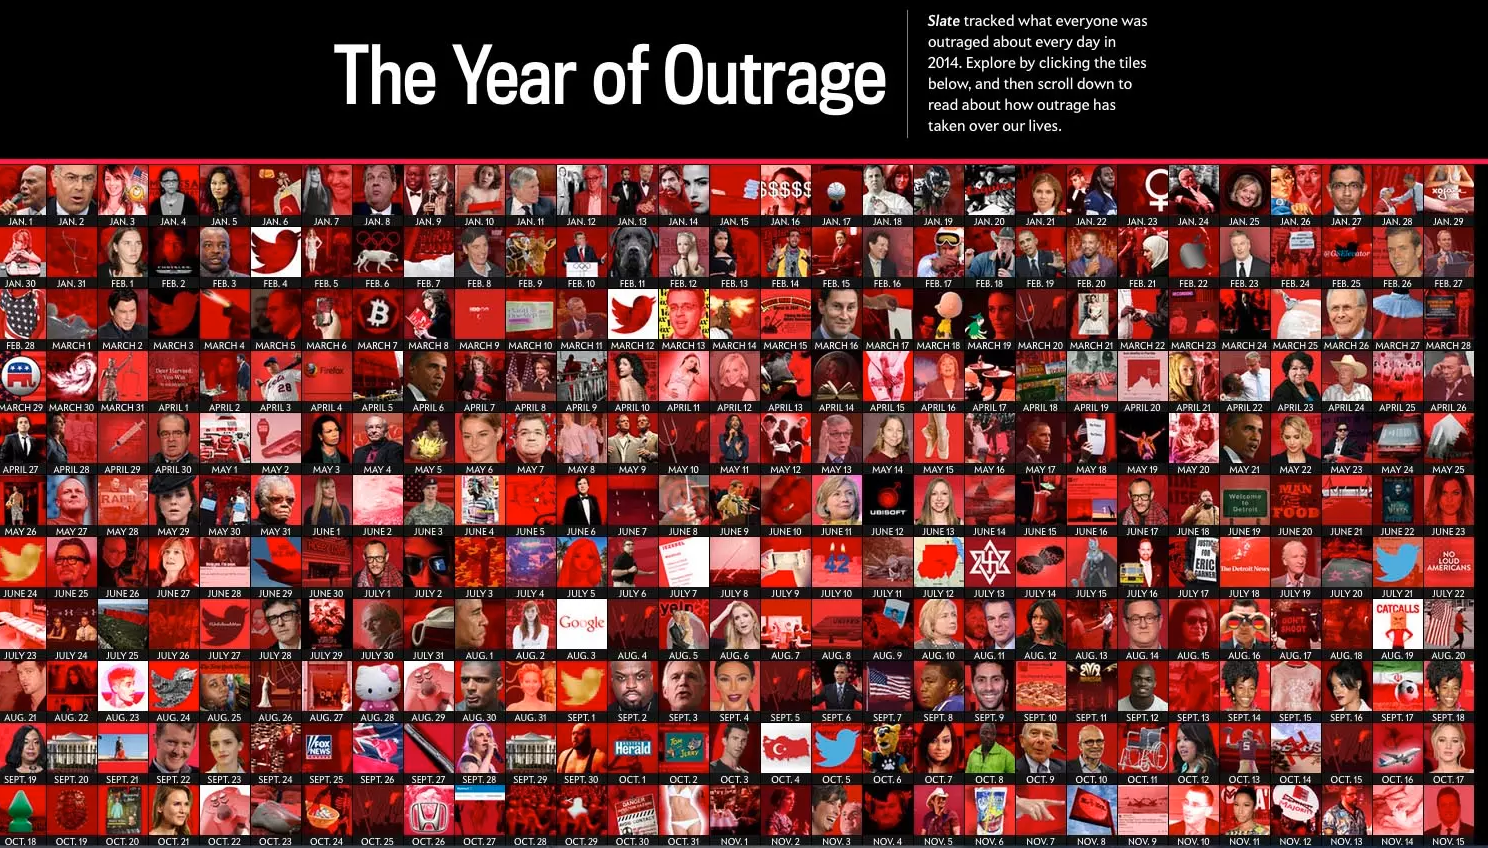 What pissed you off this year? Slate tracks what angered people each day of 2014 http://t.co/OpS8wIx2I3 http://t.co/dHIWjgQcFv